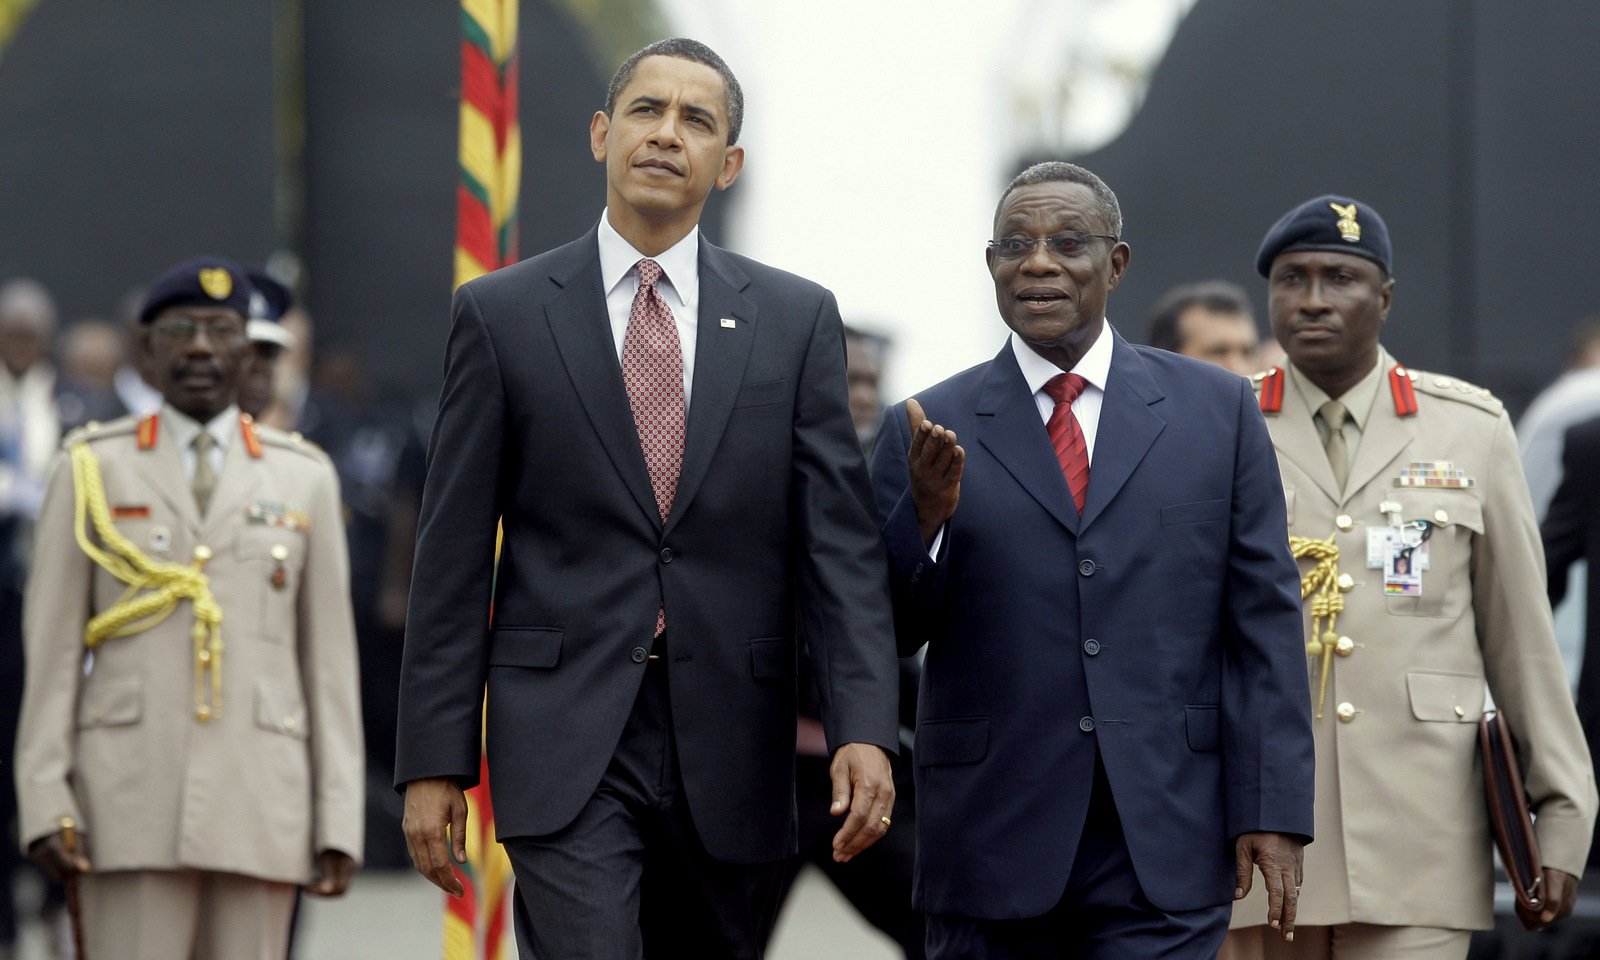 US President Barack Obama walks with Ghana President John Atta Mills, right, at the Presidential Palace in Accra, Ghana, July 11, 2009. (AP/Haraz N. Ghanbari)